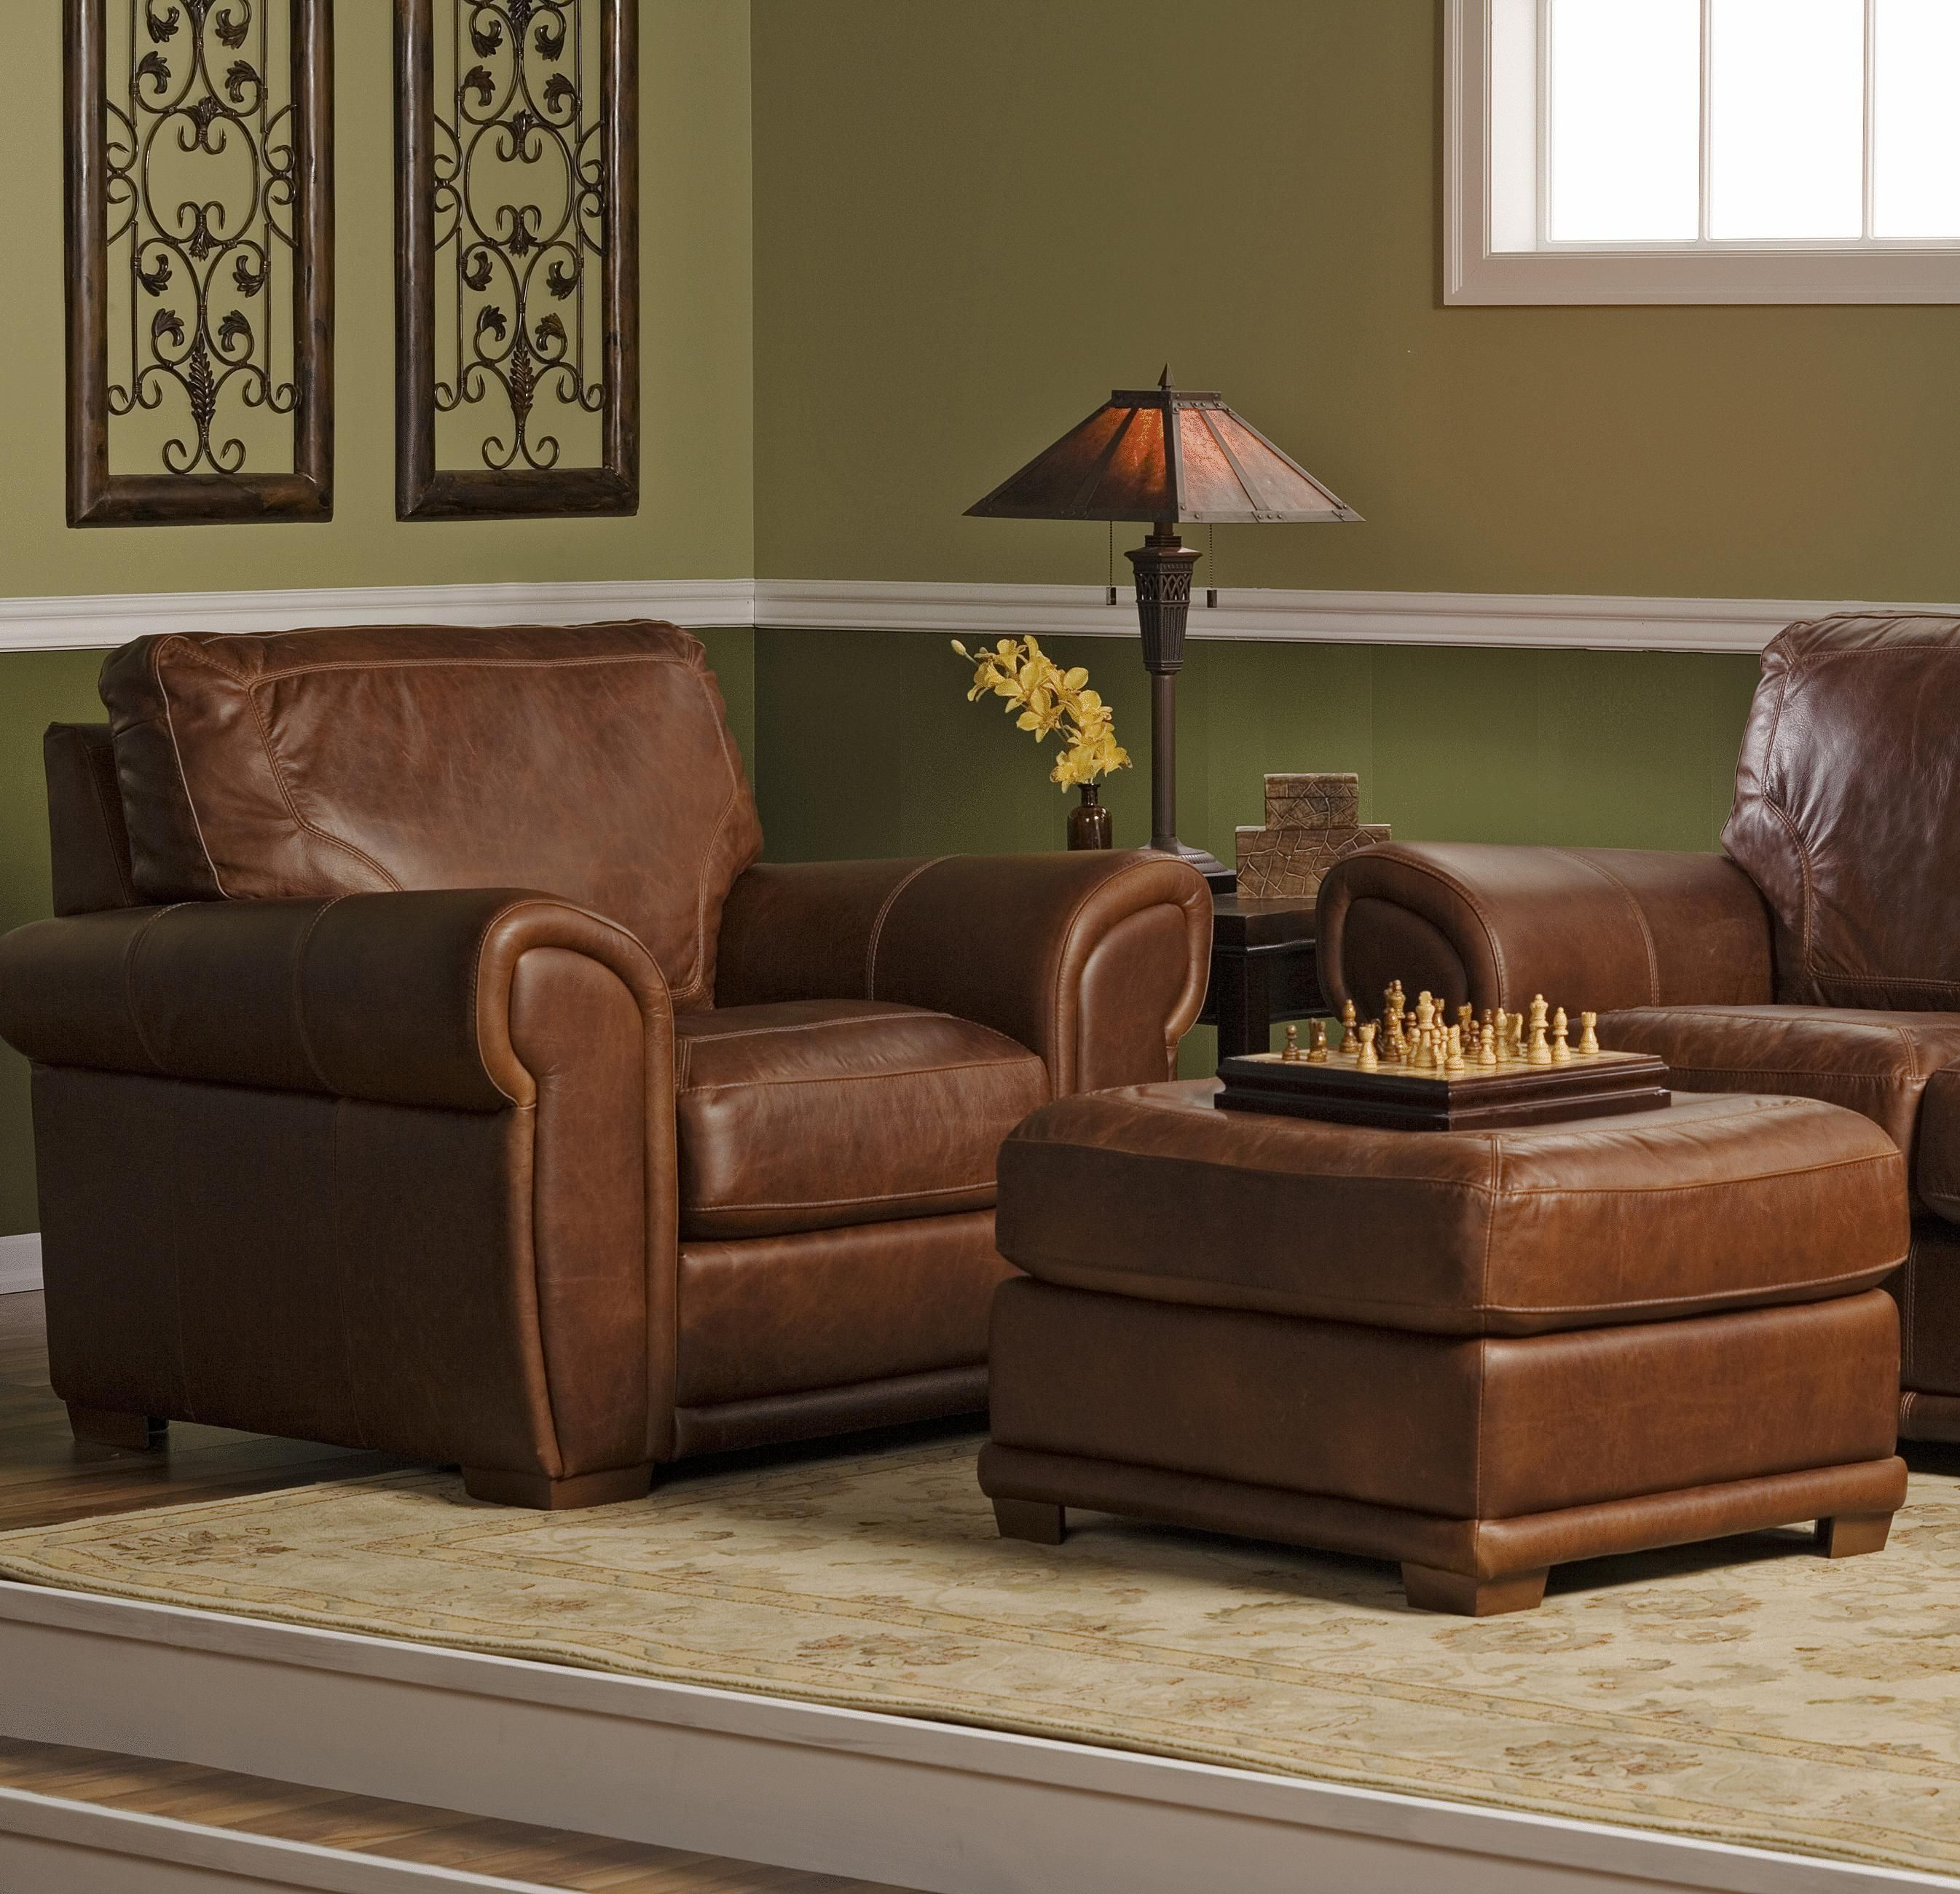 Spence Leather Chair and Ottoman Combination Set by Palliser